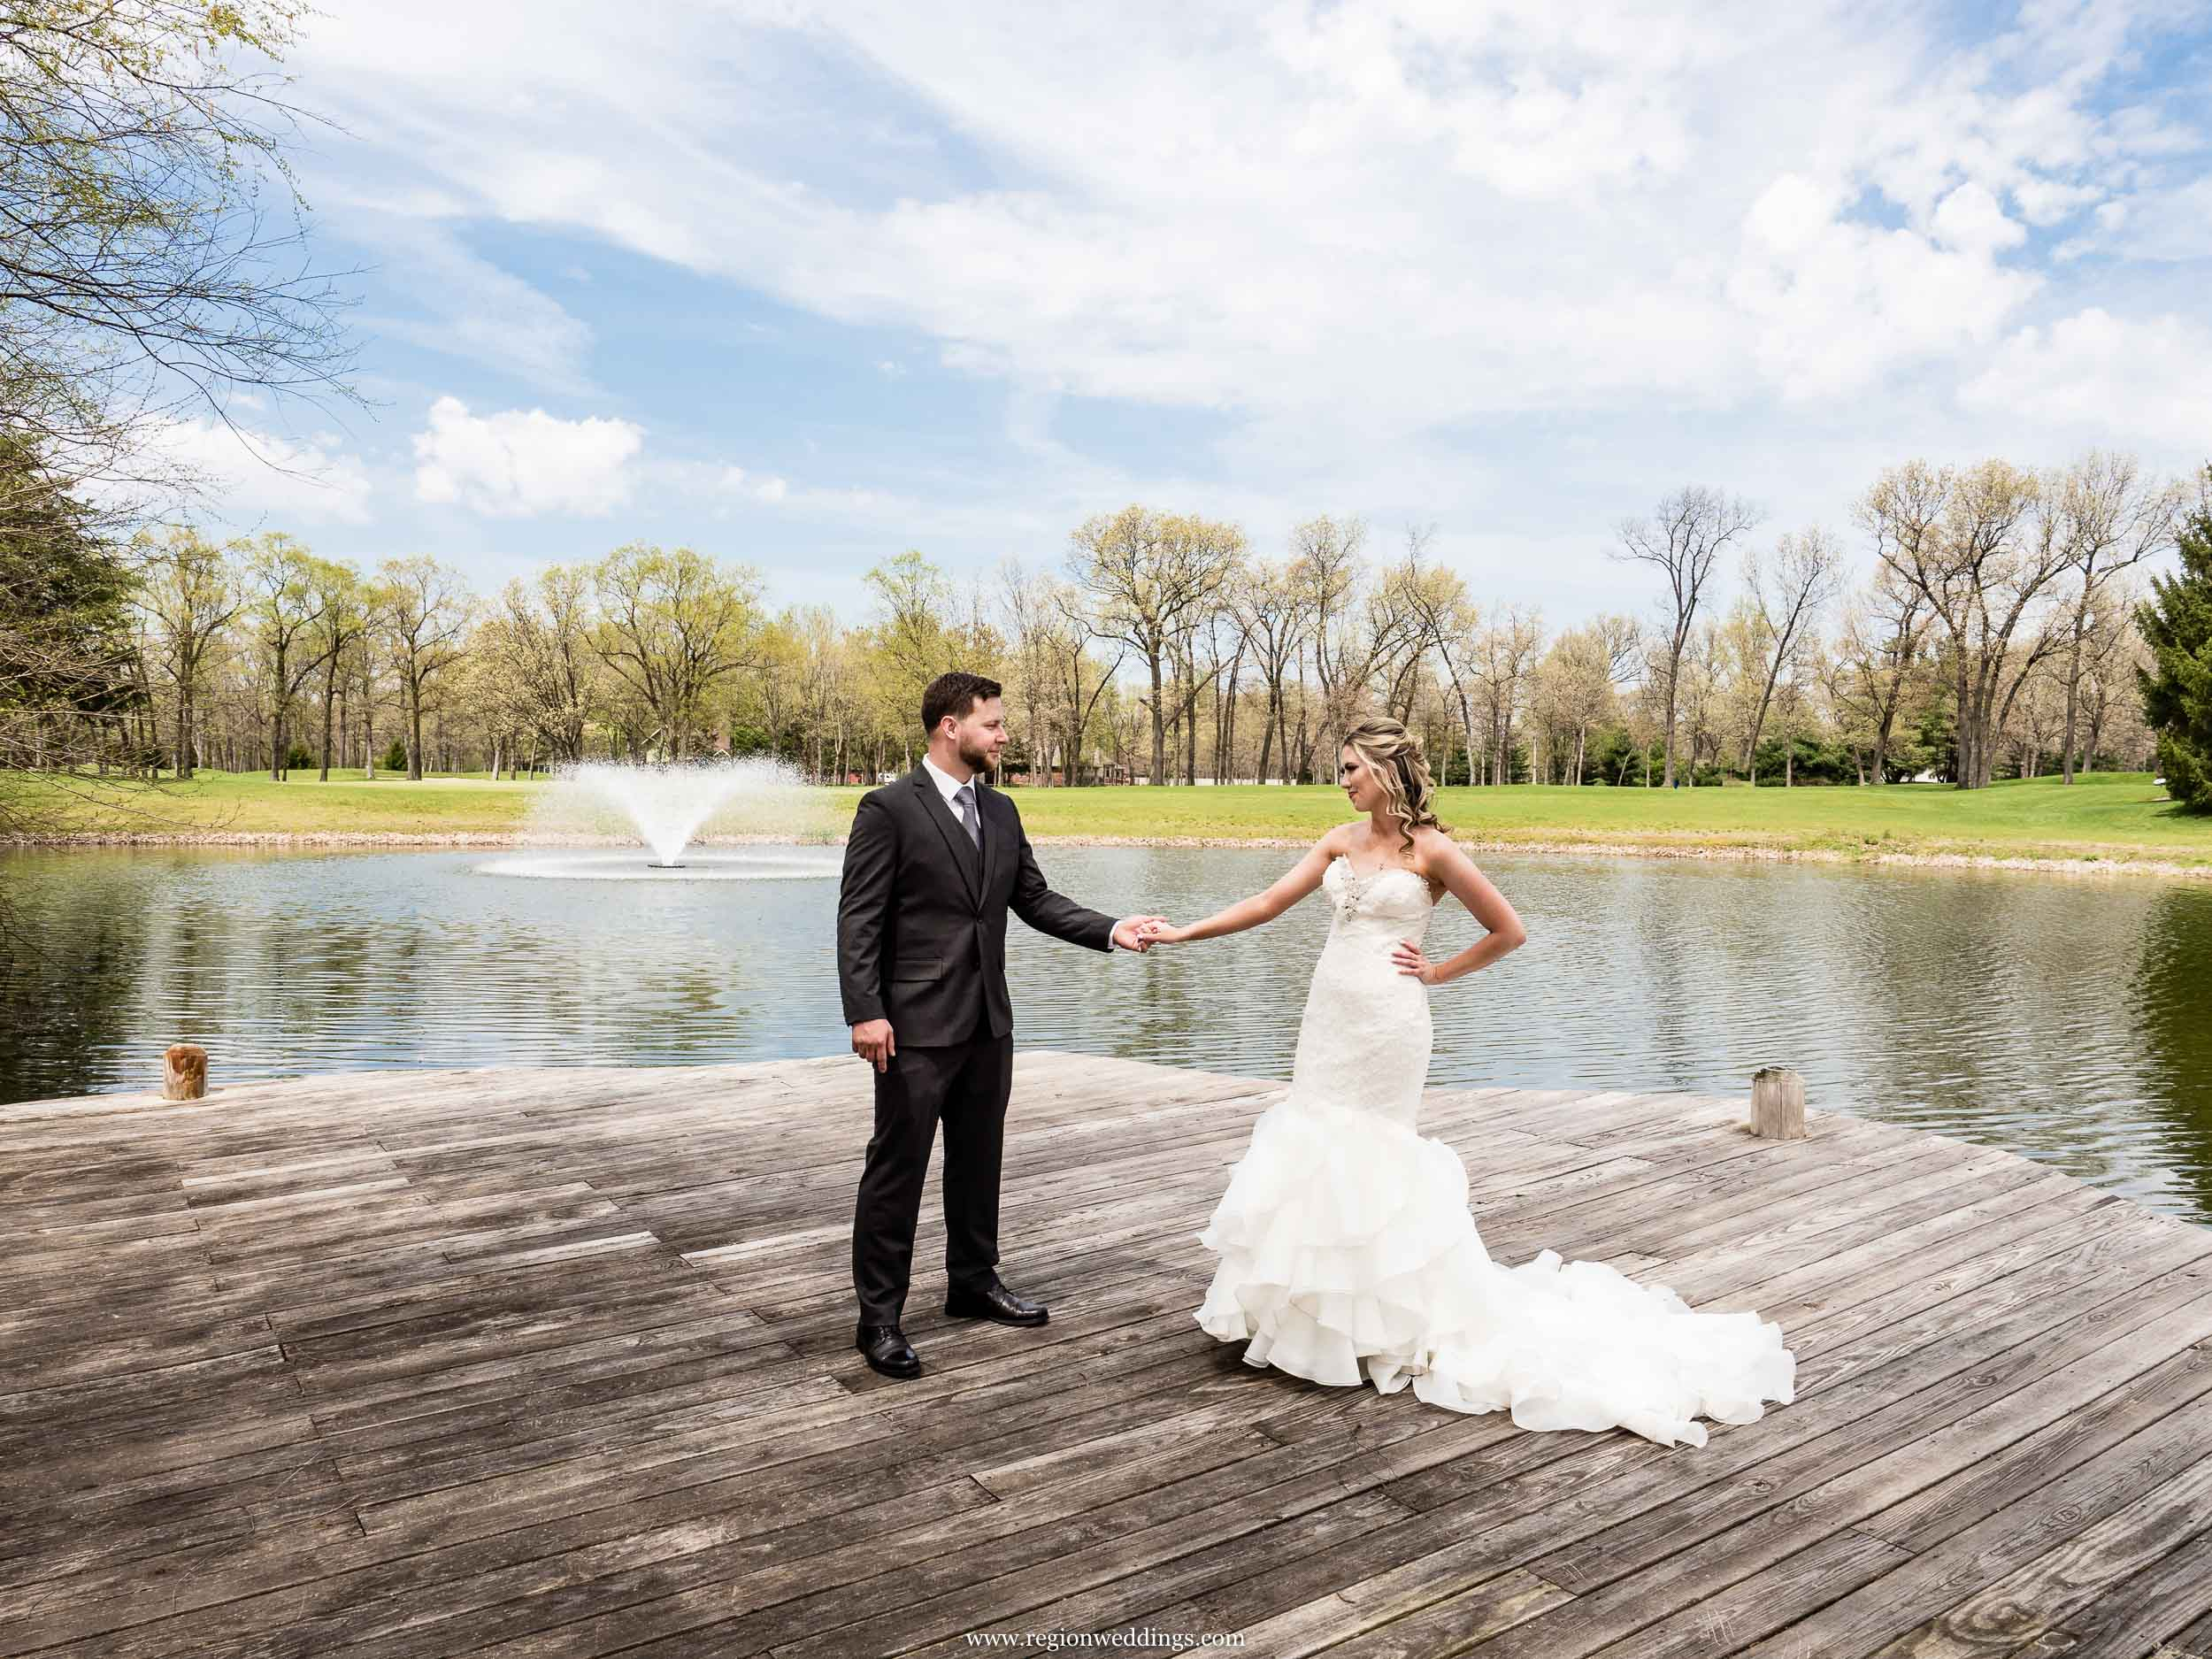 Bride and groom hold hands on the lake pier at Sandy Pines Golf Course.